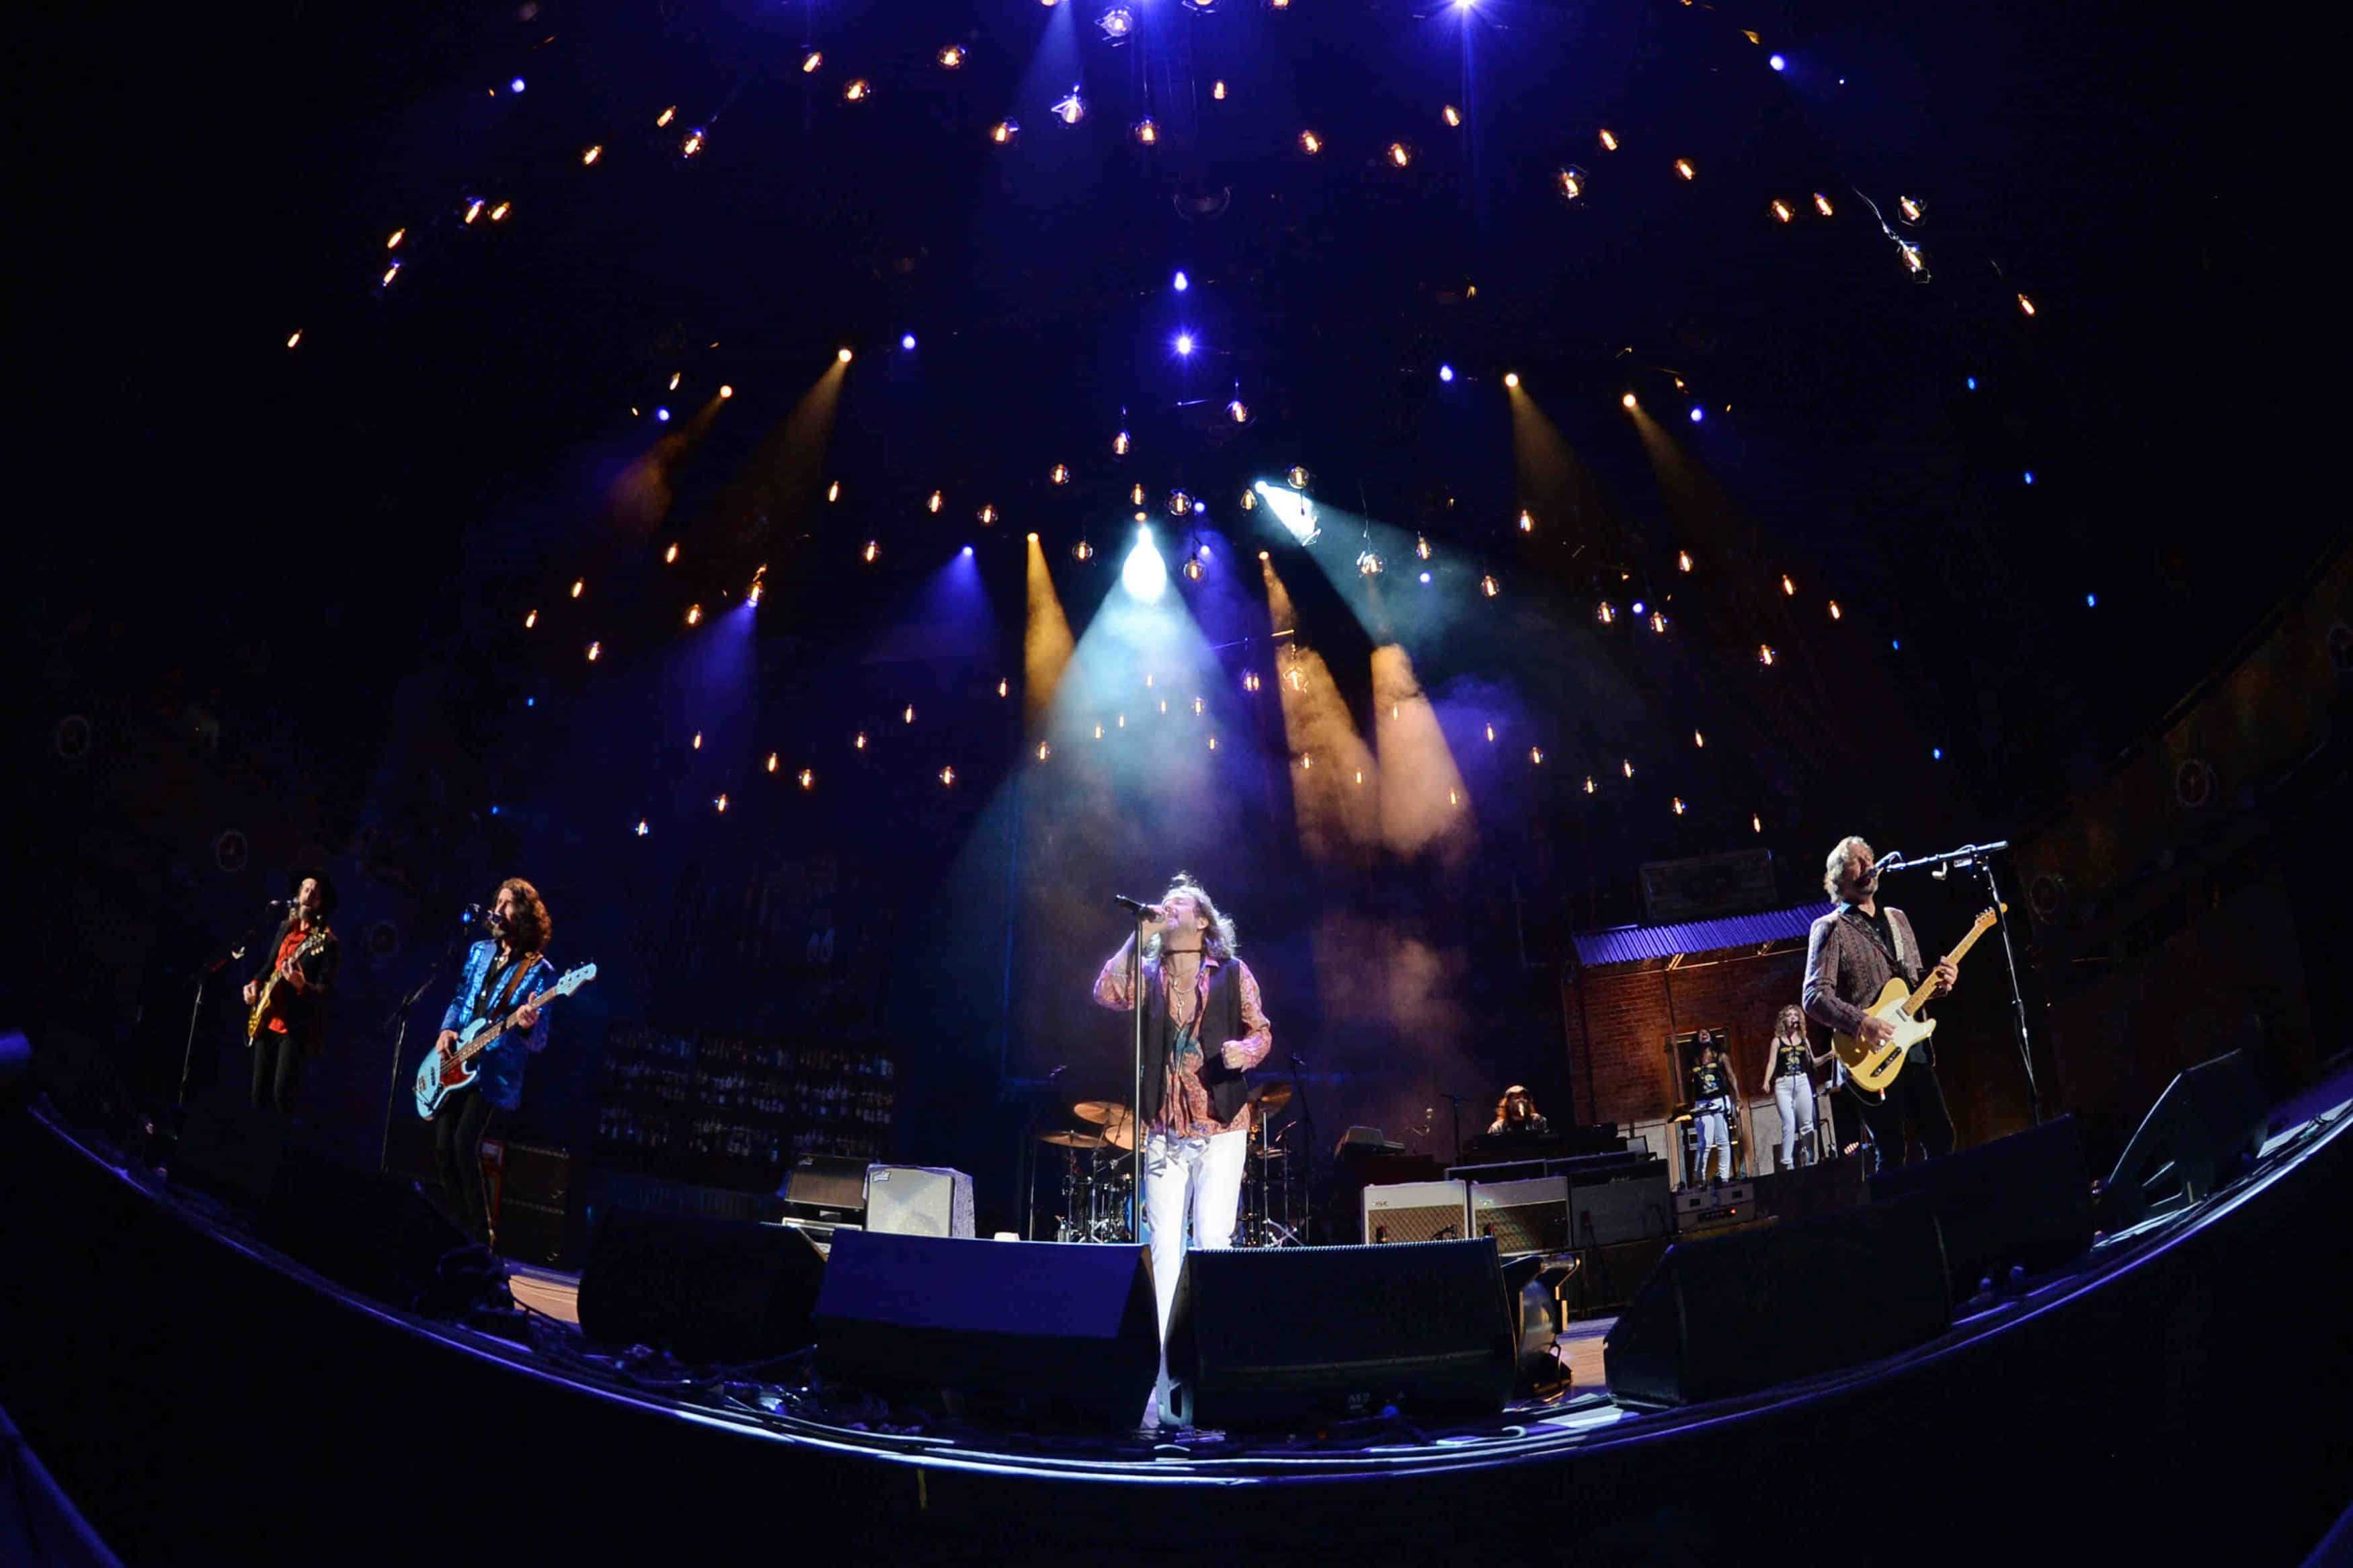 The Black Crowes Concert at iTHINK Financial Amphitheatre